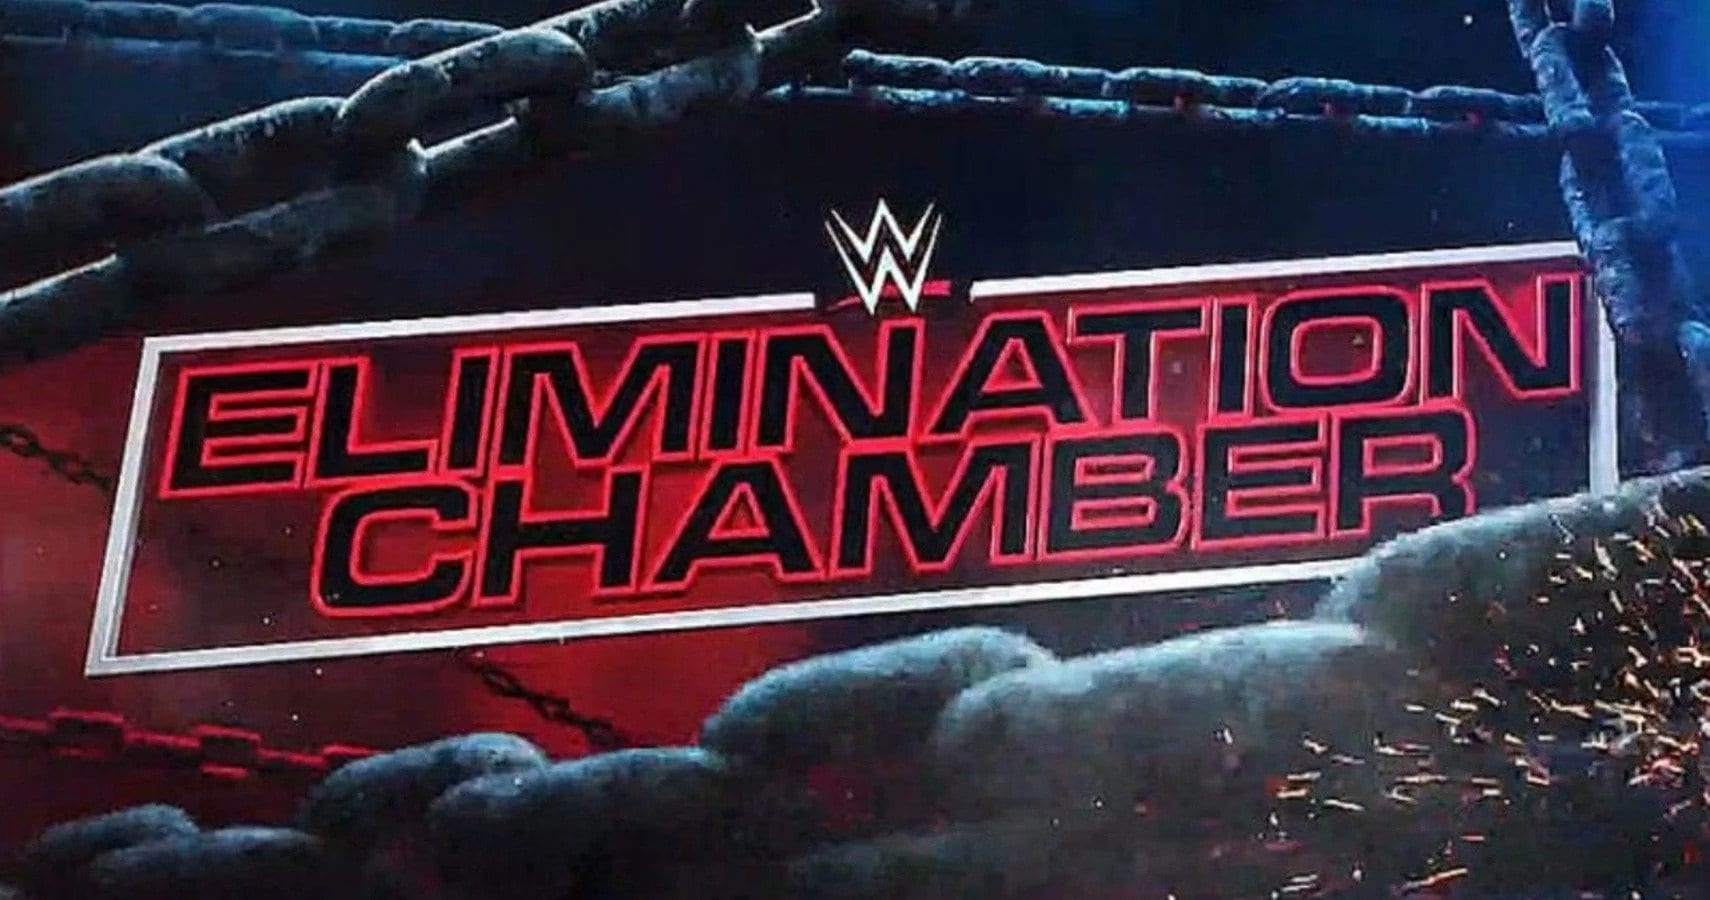 WWE Elimination Chamber 2021 Preview & Predictions - Wrestling Inc.